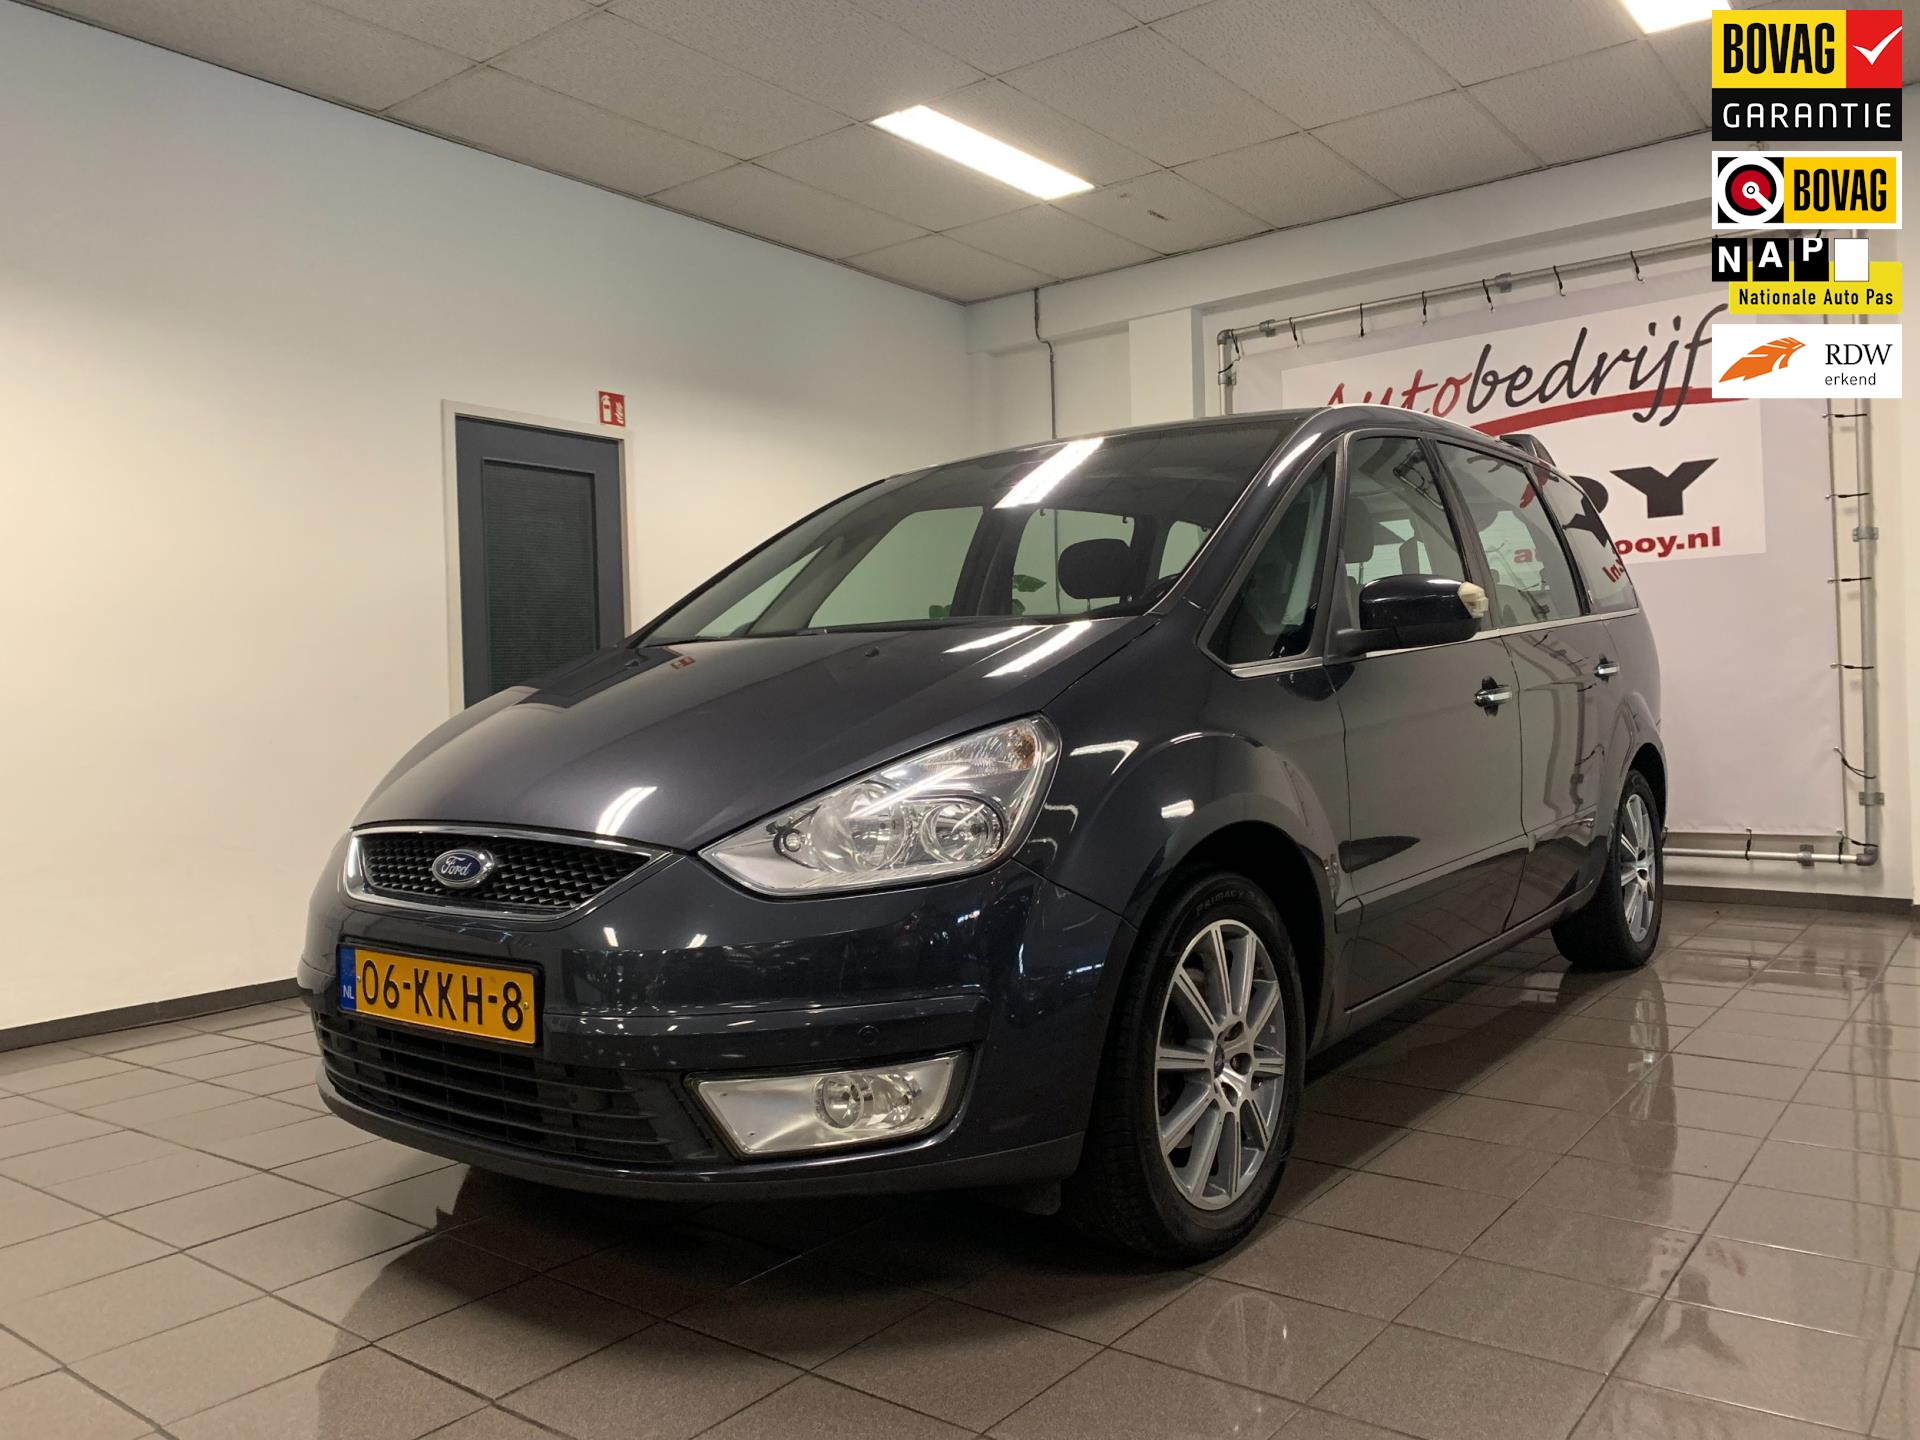 Ford Galaxy 2.0 Ghia Limited * 7 Persoons / Navigatie / Trekhaak *